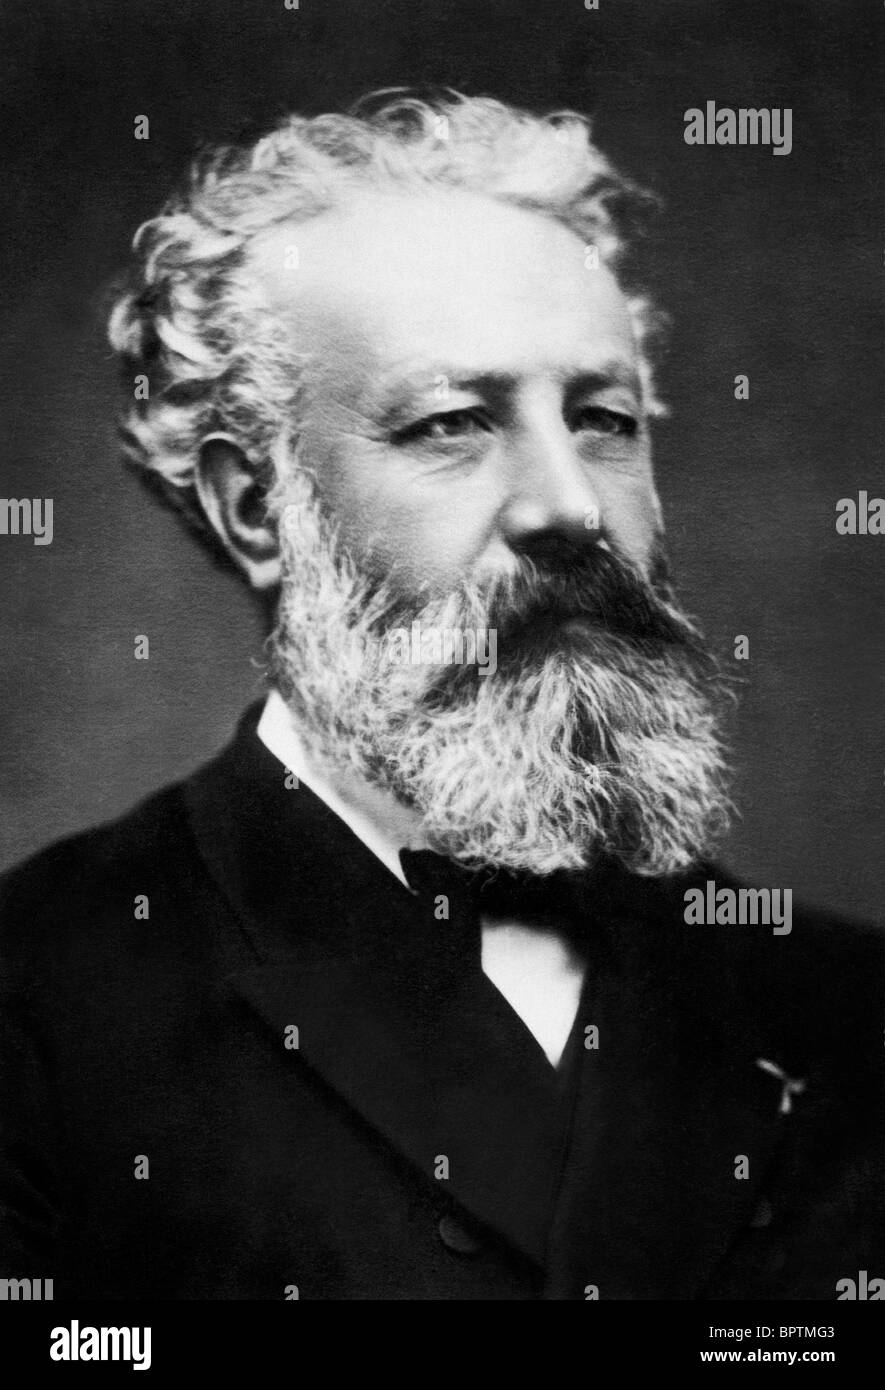 JULES VERNE WRITER AUTHOR (1878) - Stock Image